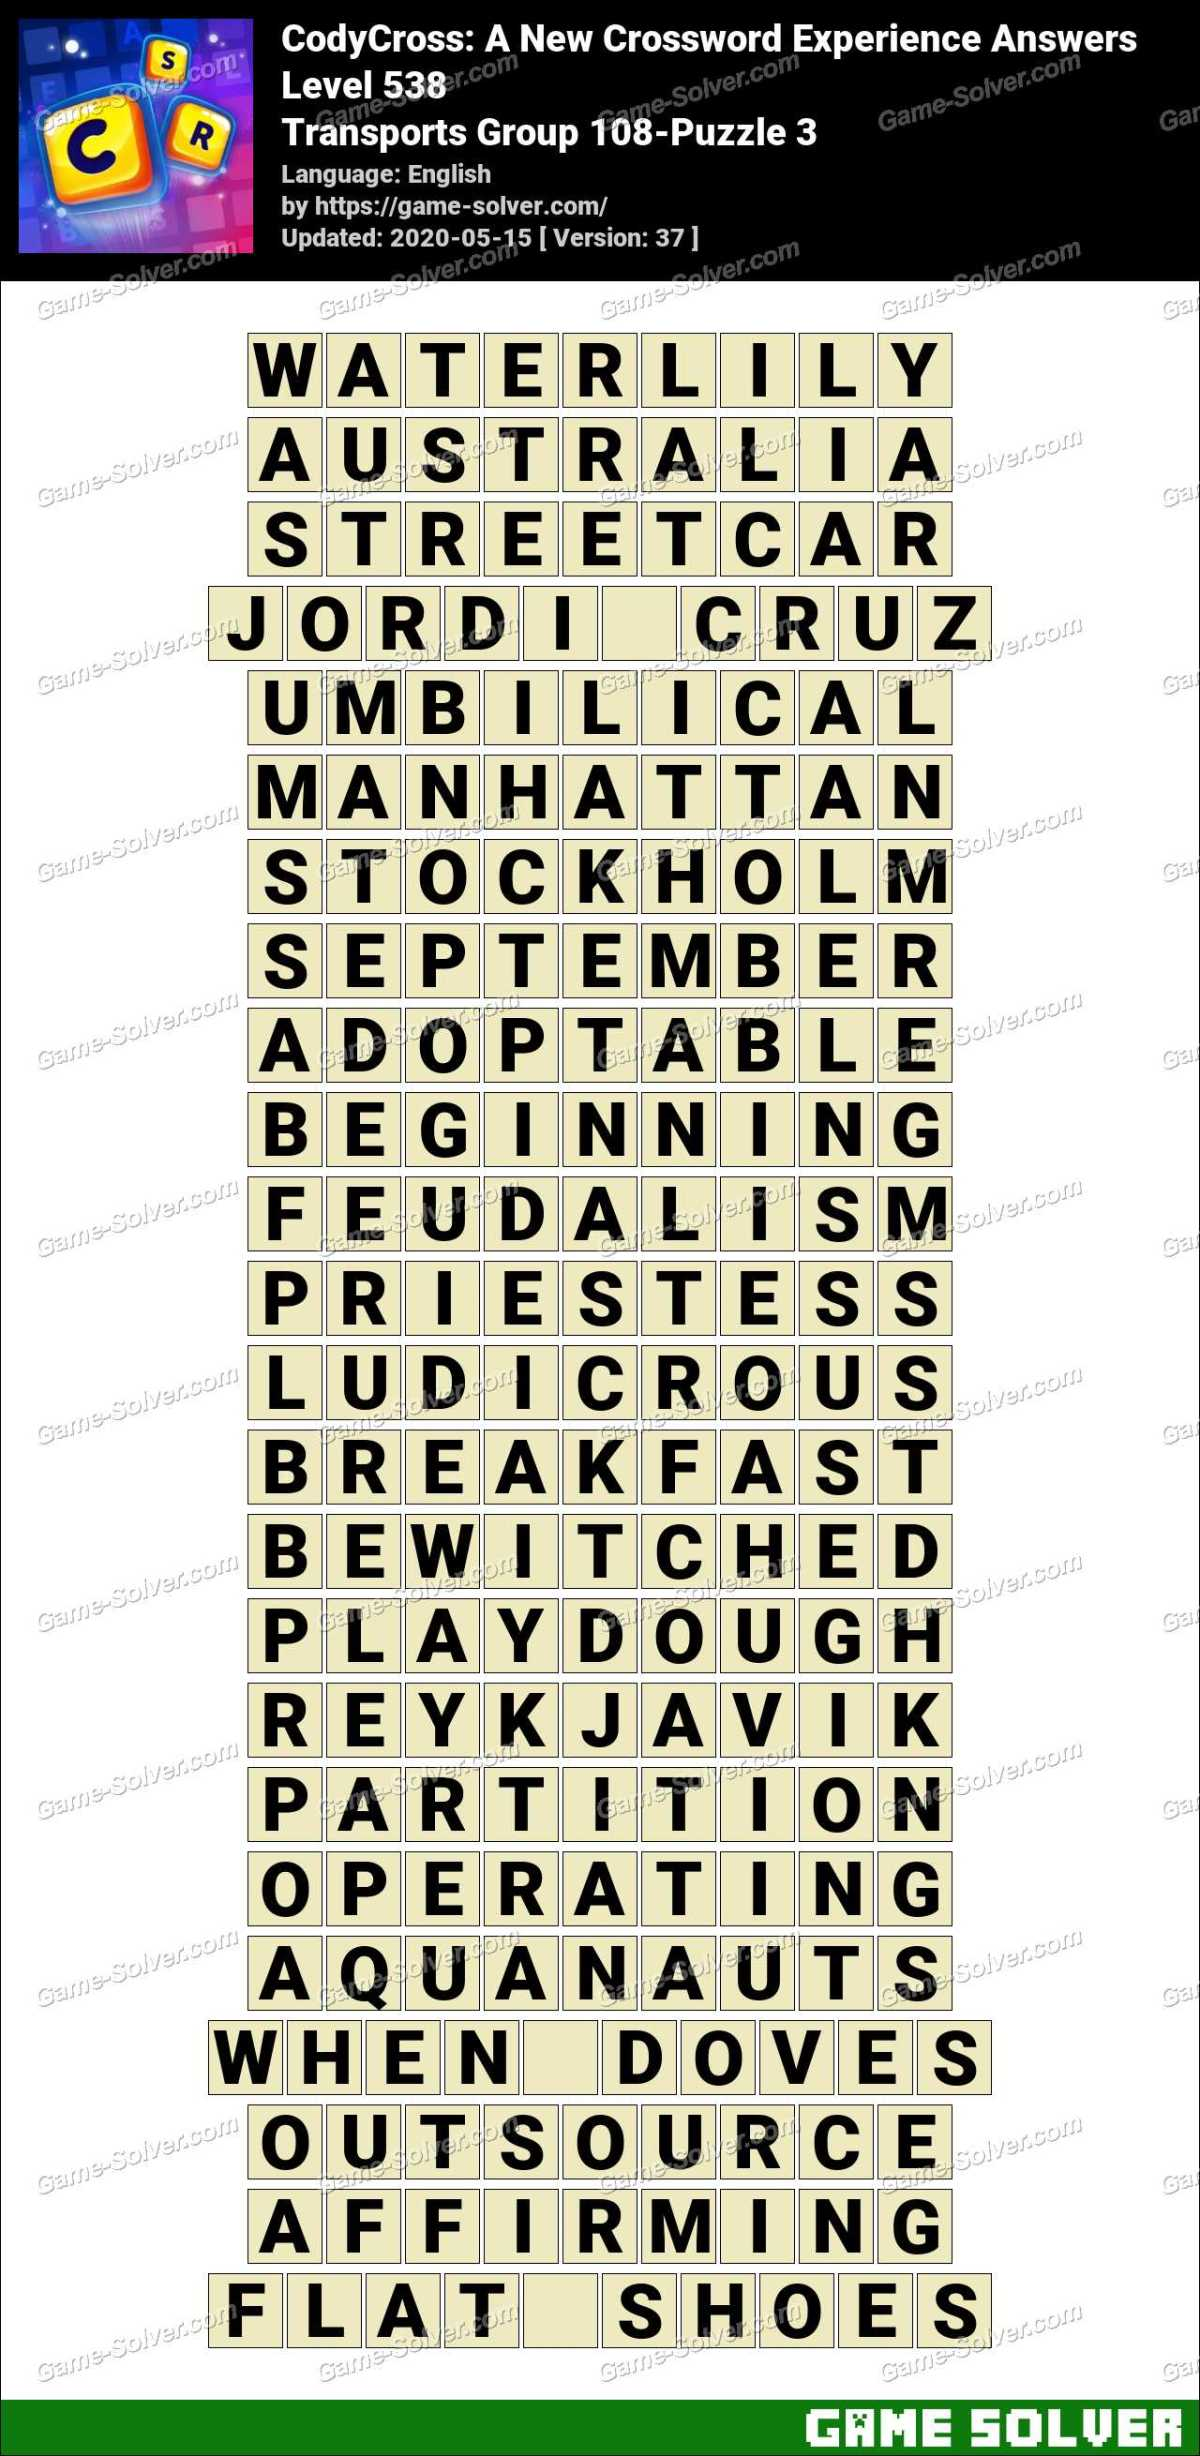 CodyCross Transports Group 108-Puzzle 3 Answers